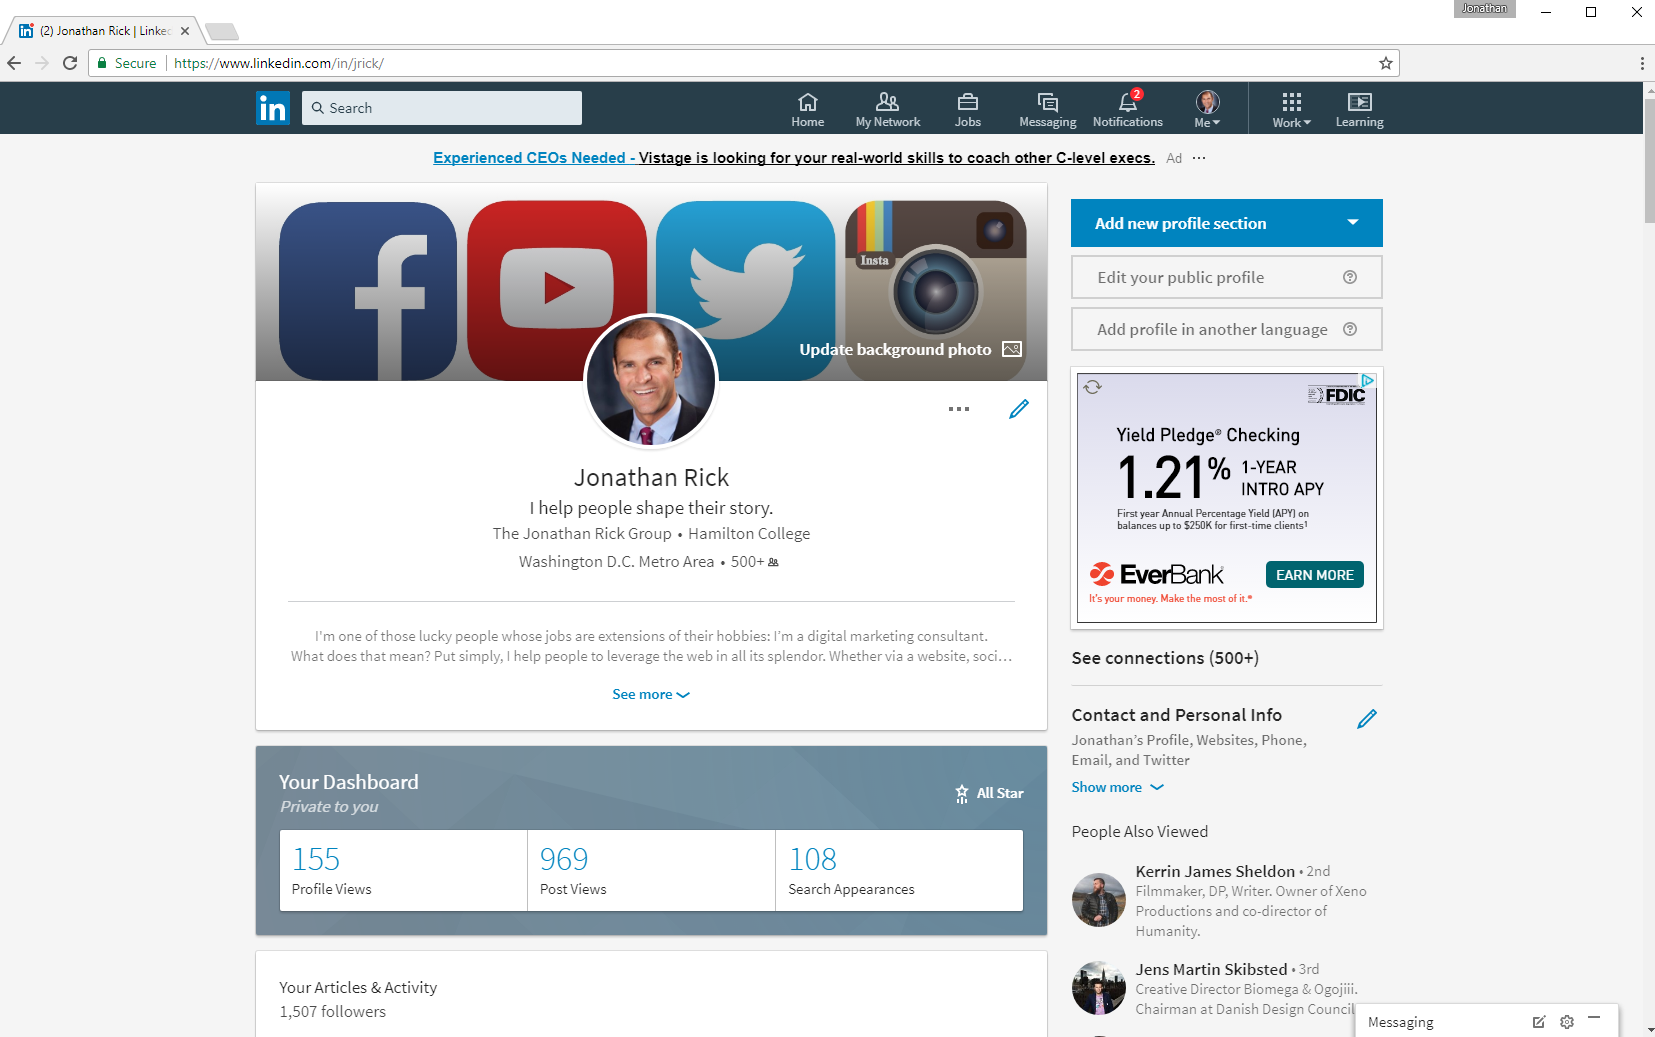 Your LinkedIn Profile Needs to Be Overhauled and Optimized. We Can Help.